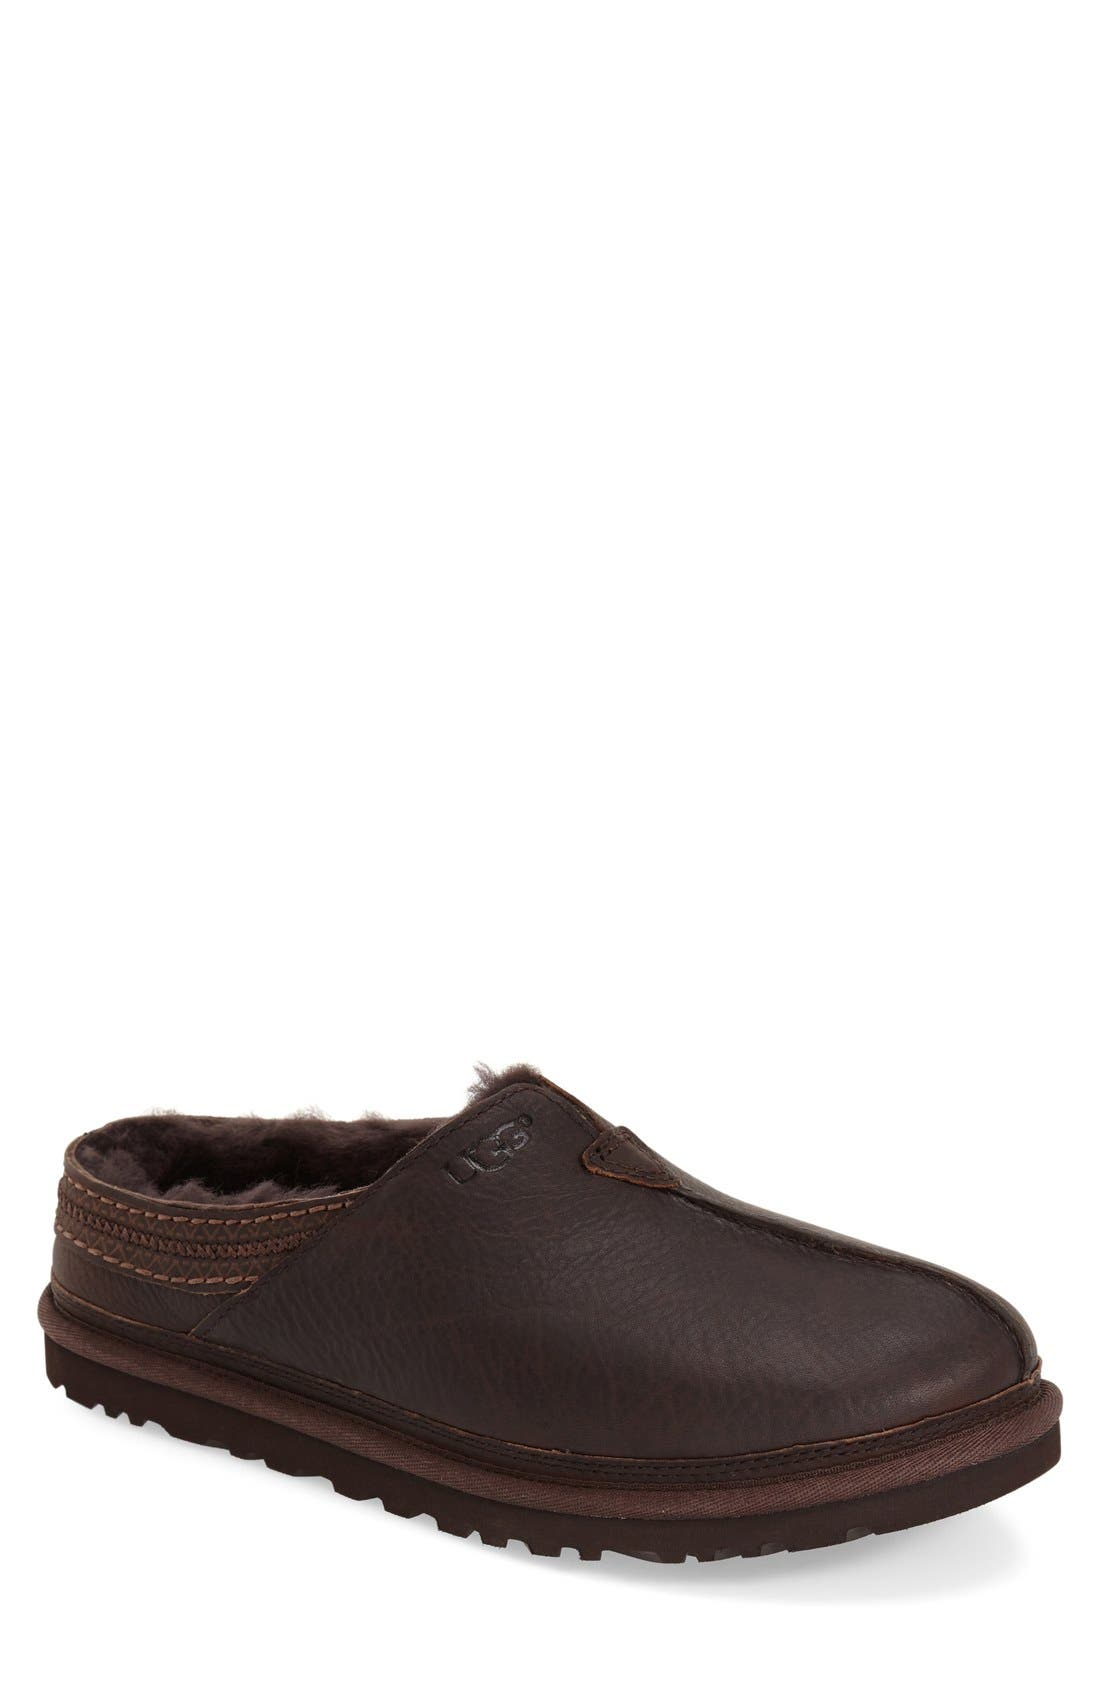 Main Image - UGG® Neuman Slipper (Men)